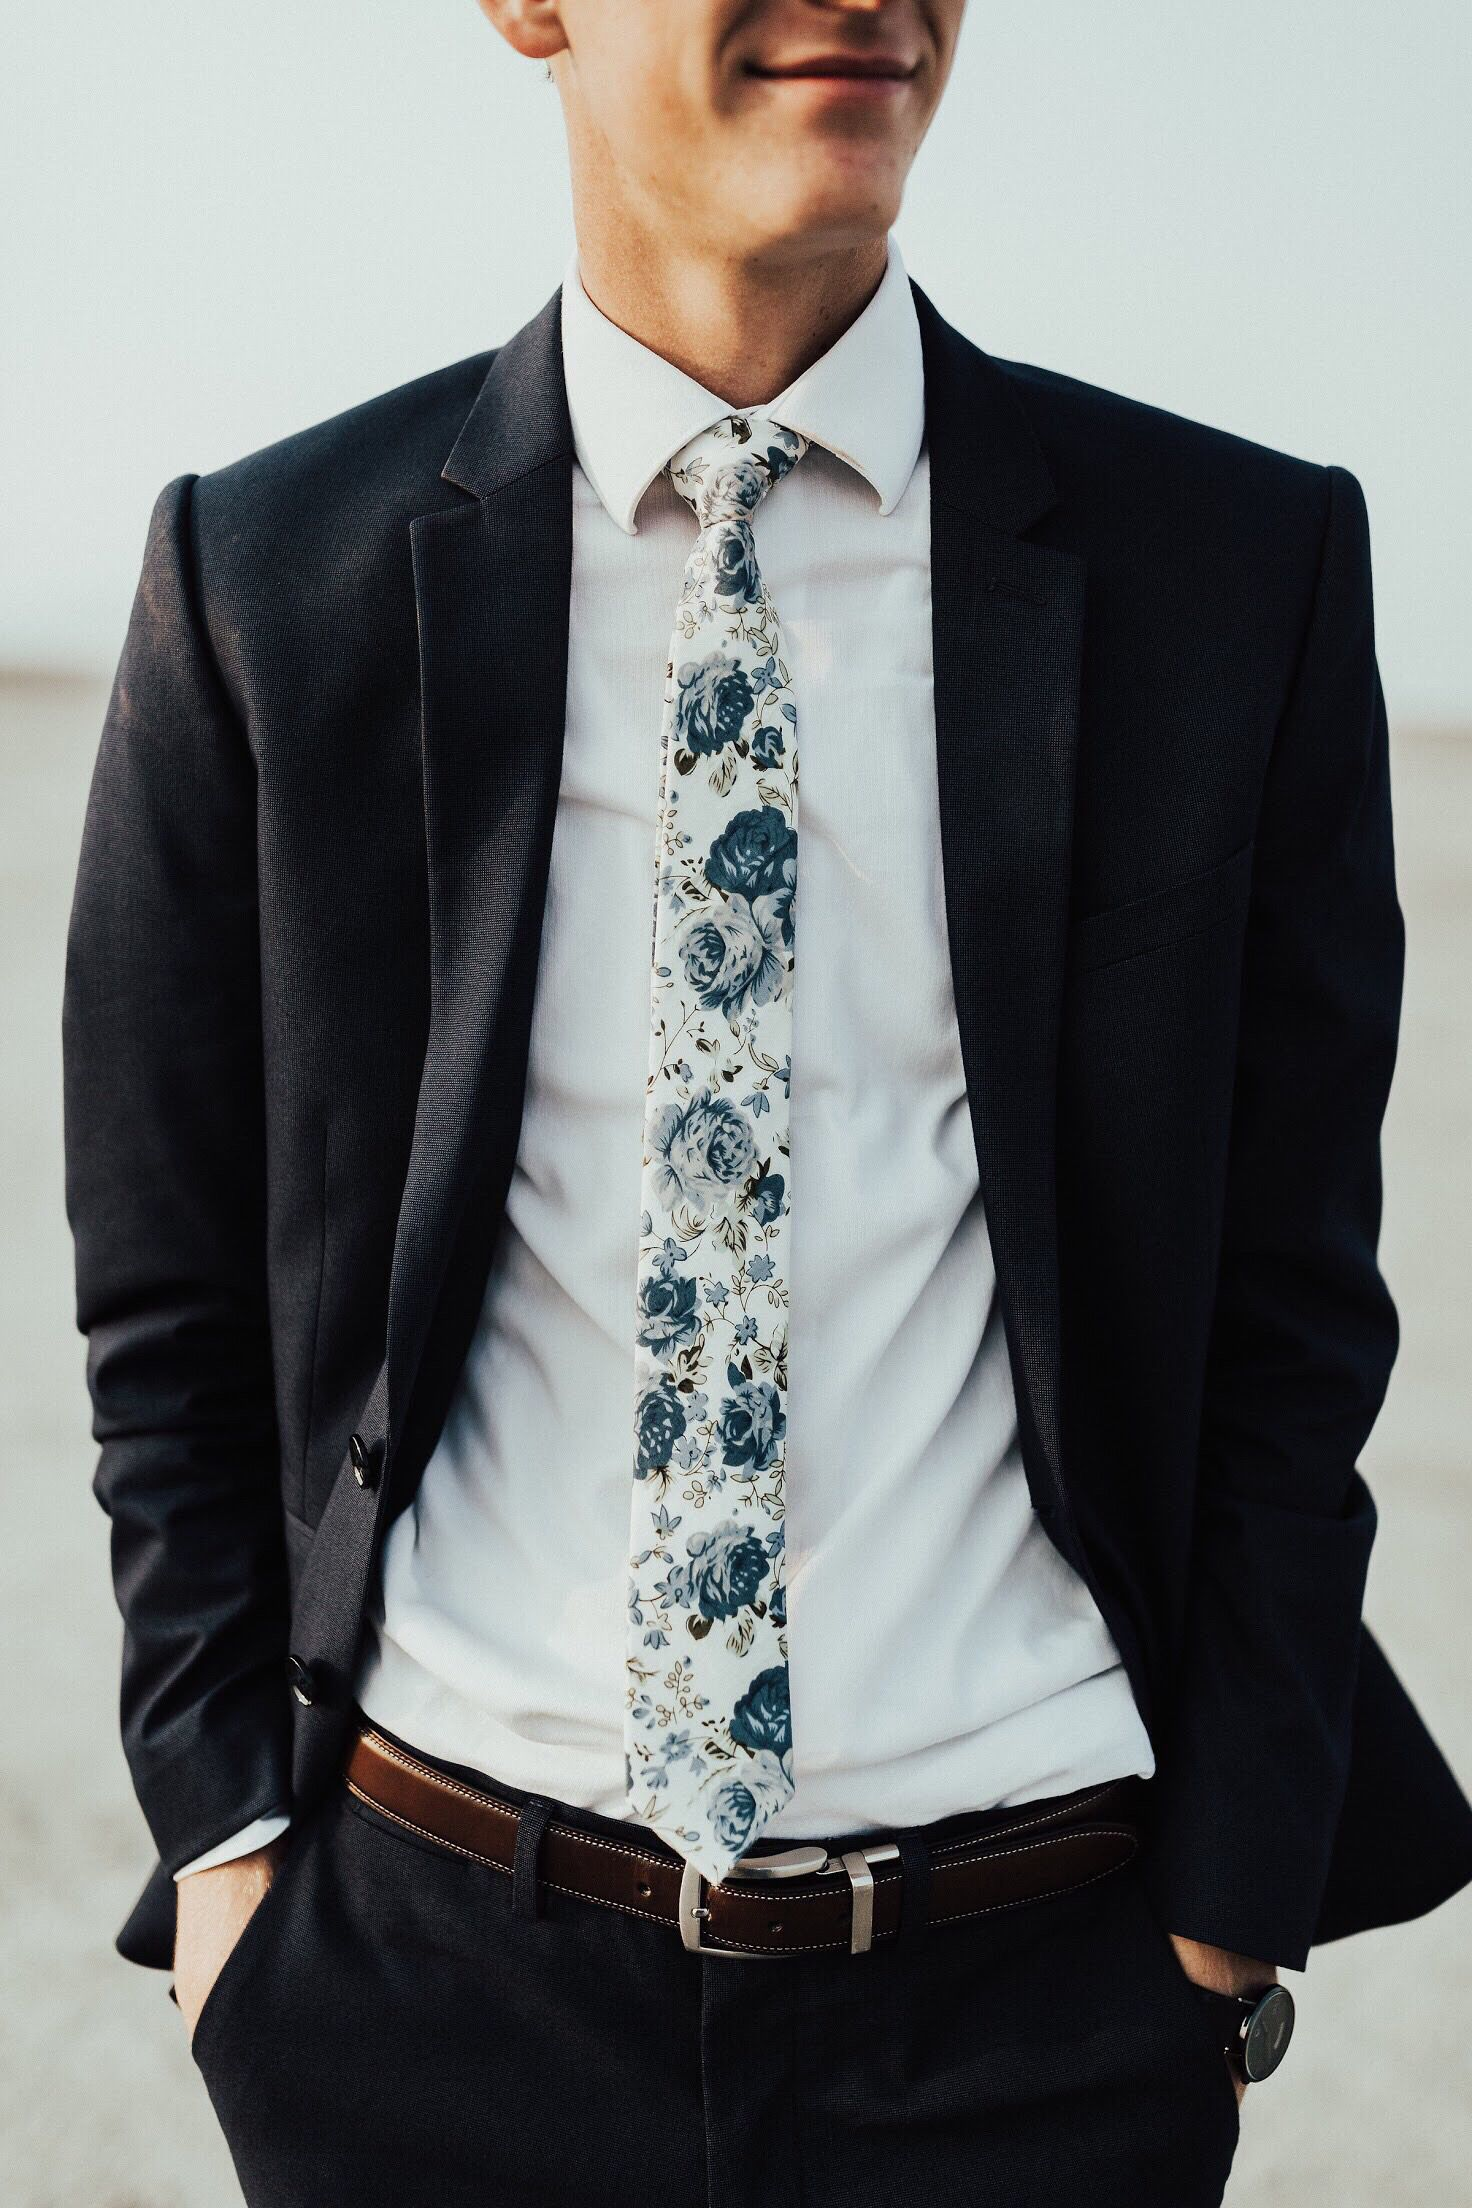 Reception Skinny Tie for Wedding Boys Gift Tie Formal Party